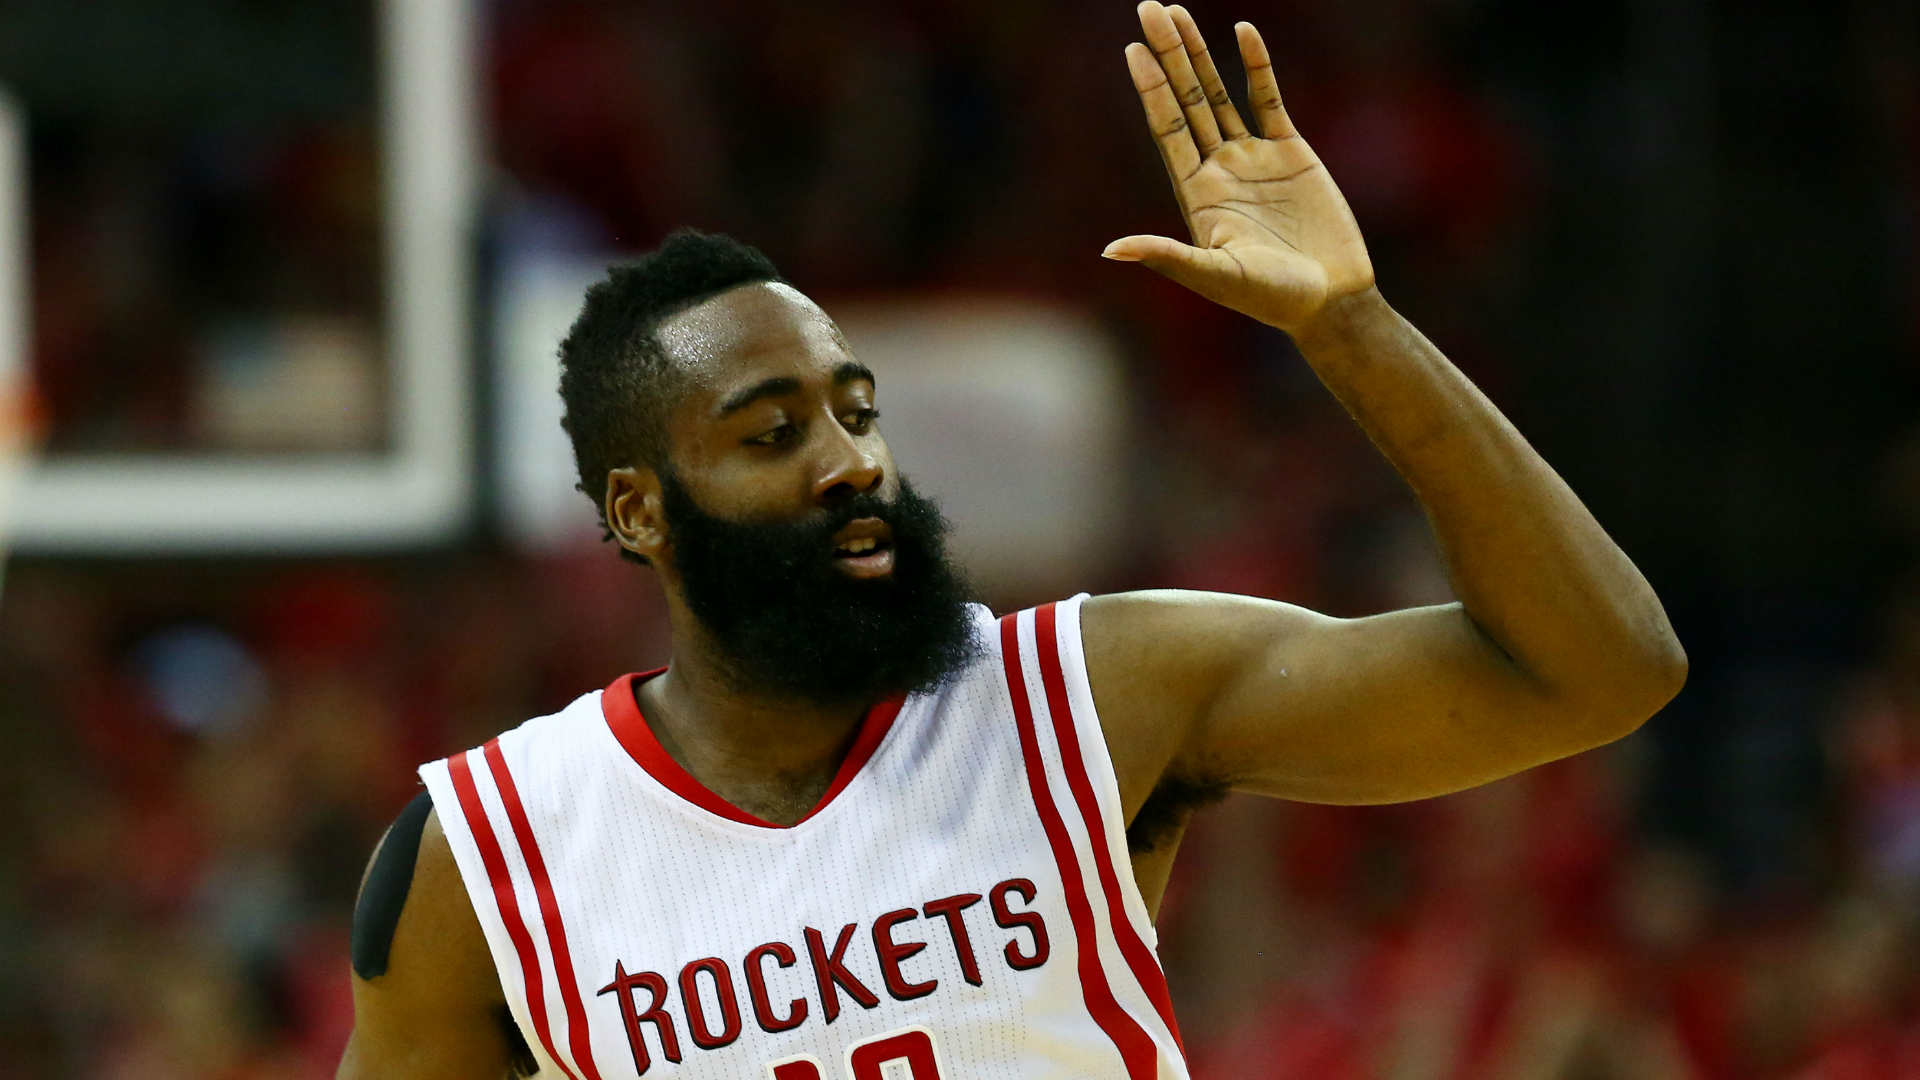 Adidas Offers Up 200m For James Harden Sporting News